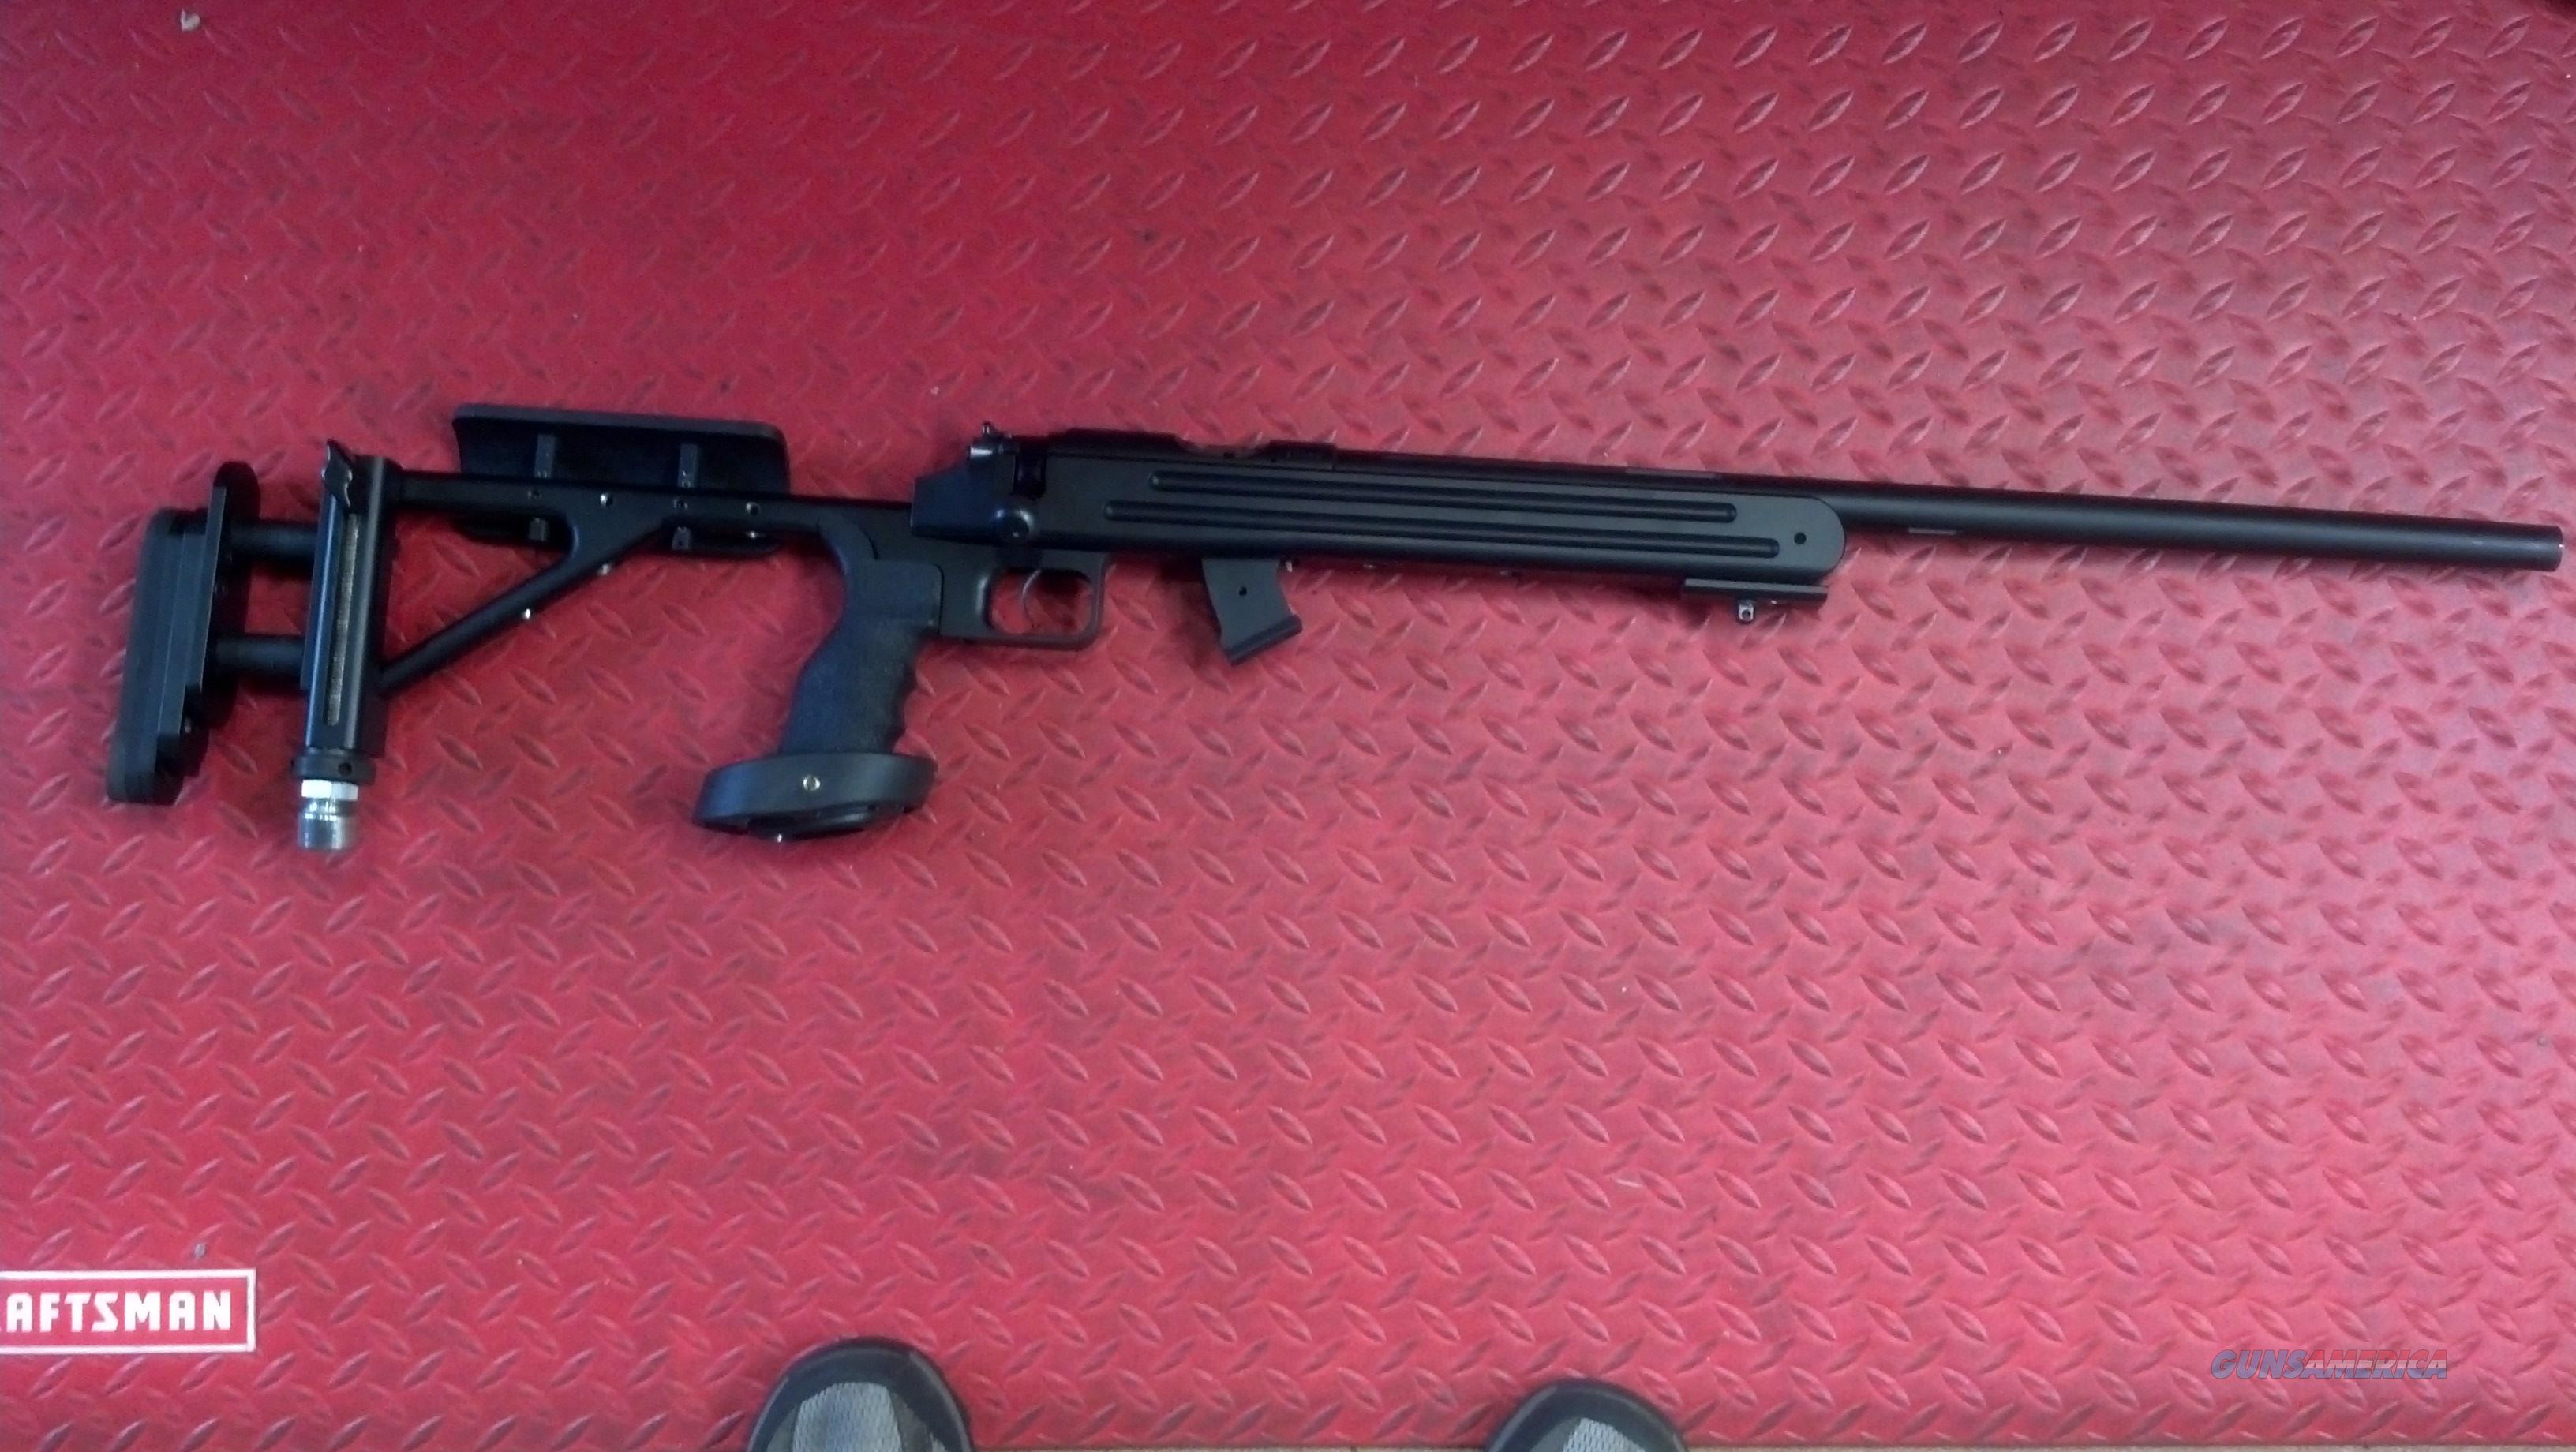 Very nice Brno #2 match rifle in chassis